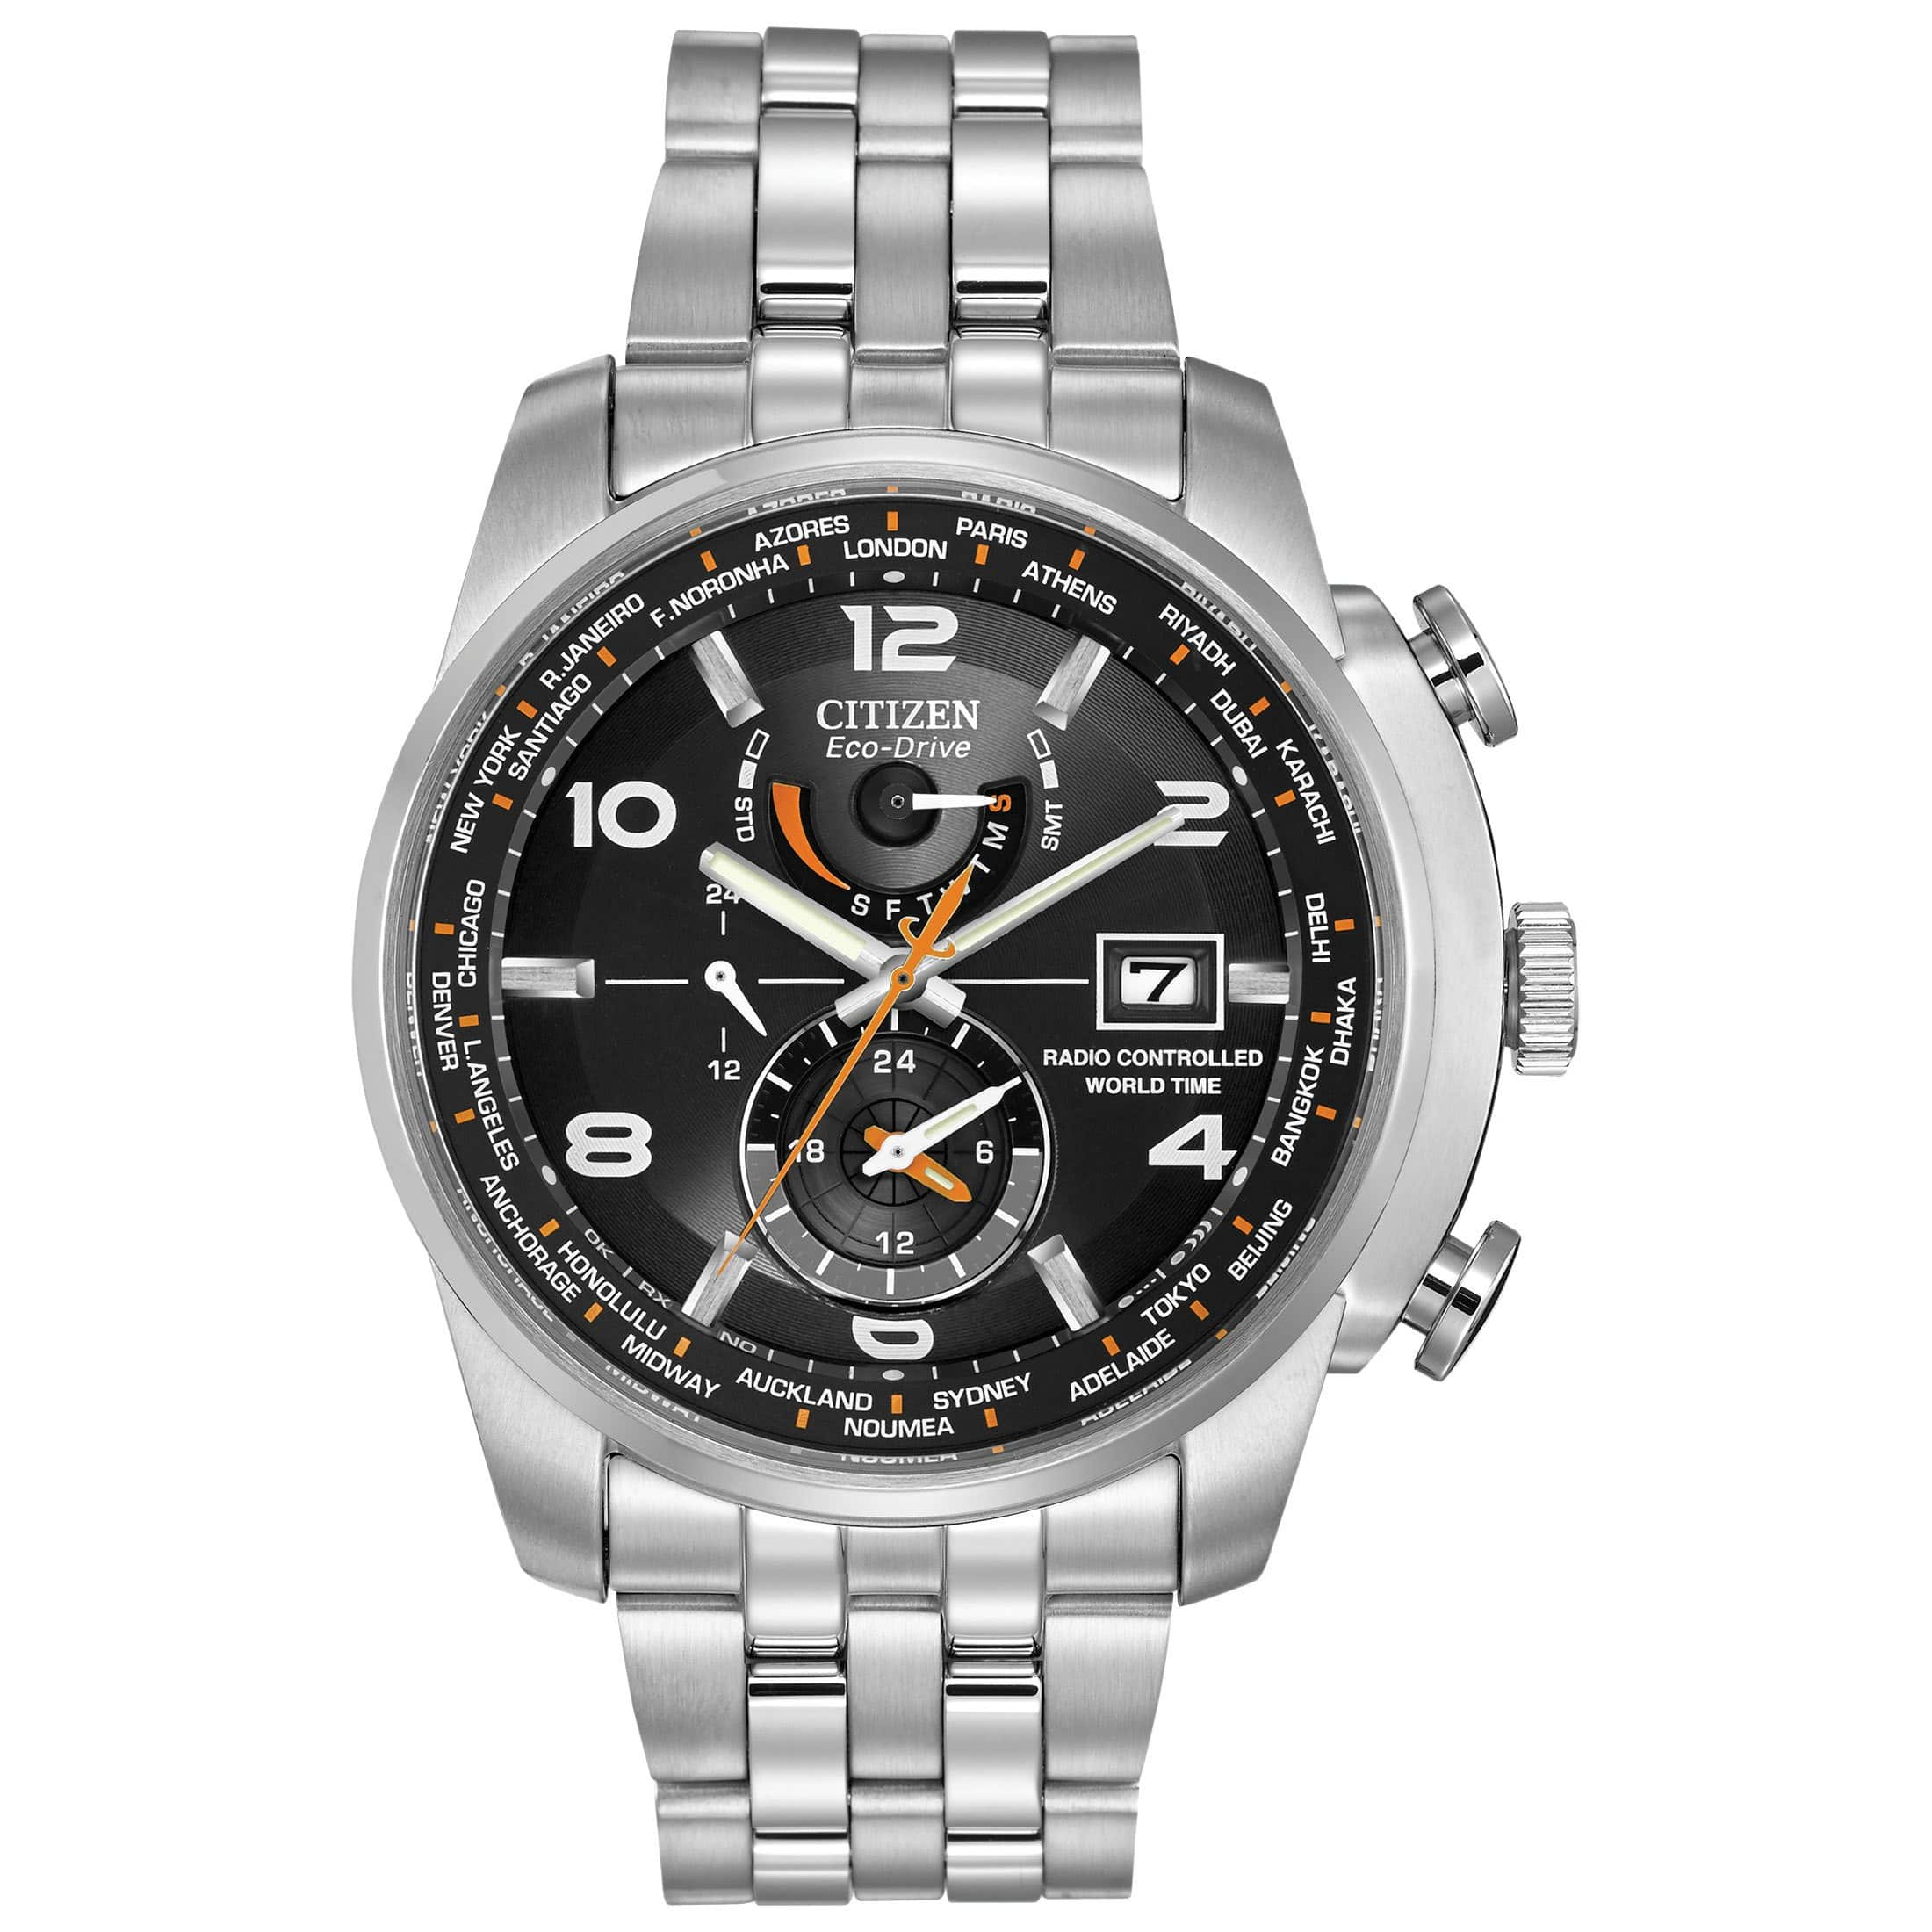 Amazon - Citizen Men's AT9010-52E World Time A-T Stainless Steel Eco-Drive Watch - $201.83 (Prime Members Only)